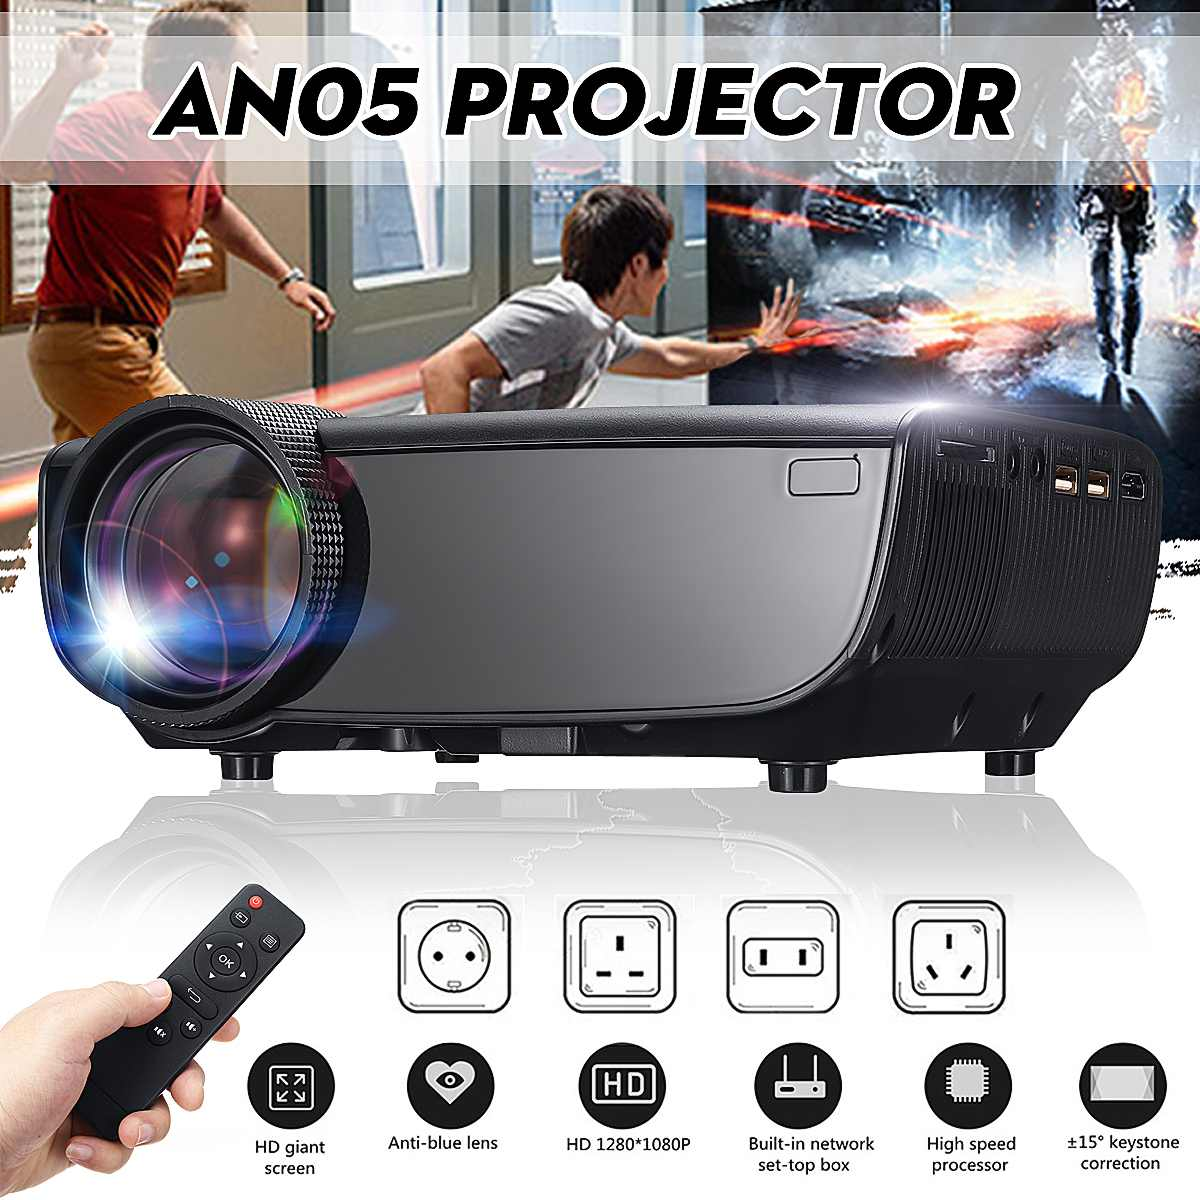 LEORY Smart Tragbare Mini LED 3D <font><b>TV</b></font> Projektor Unterstützung Full HD 1080p Video Heimkino Beamer <font><b>Proyector</b></font> image